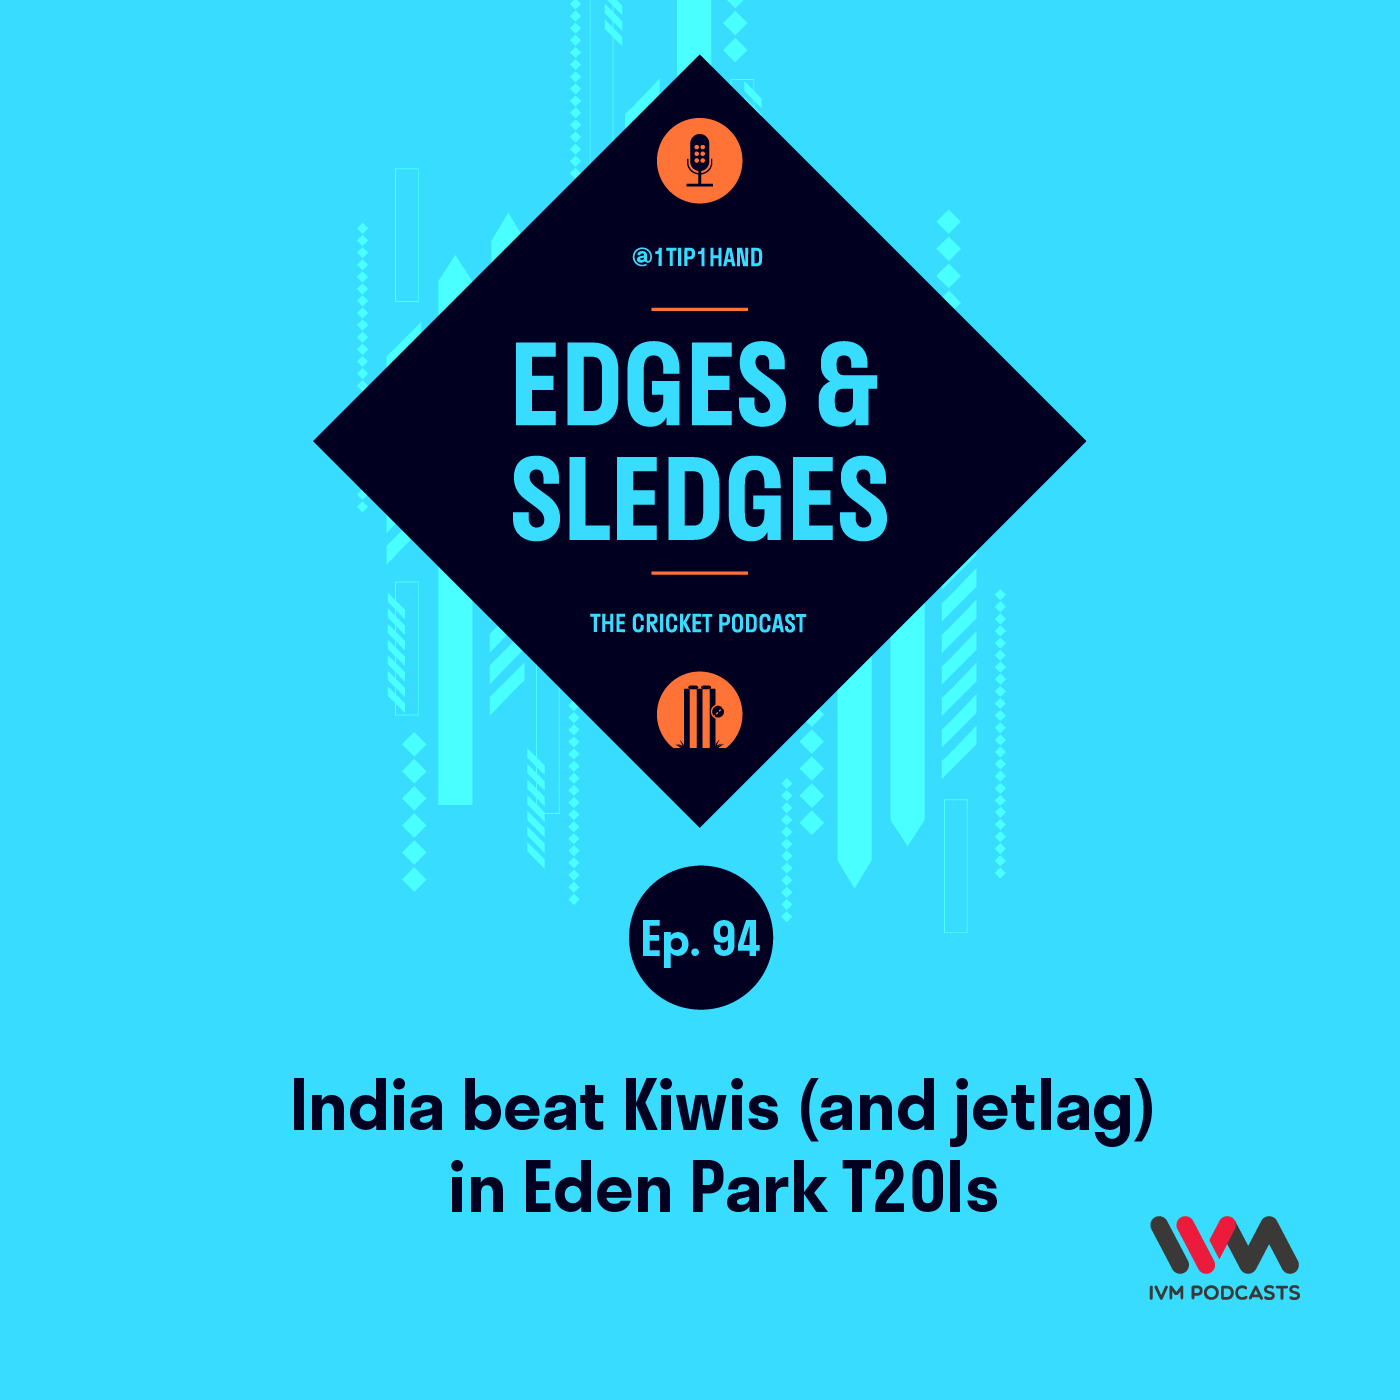 Ep. 94: India beat Kiwis (and jetlag) in Eden Park T20Is